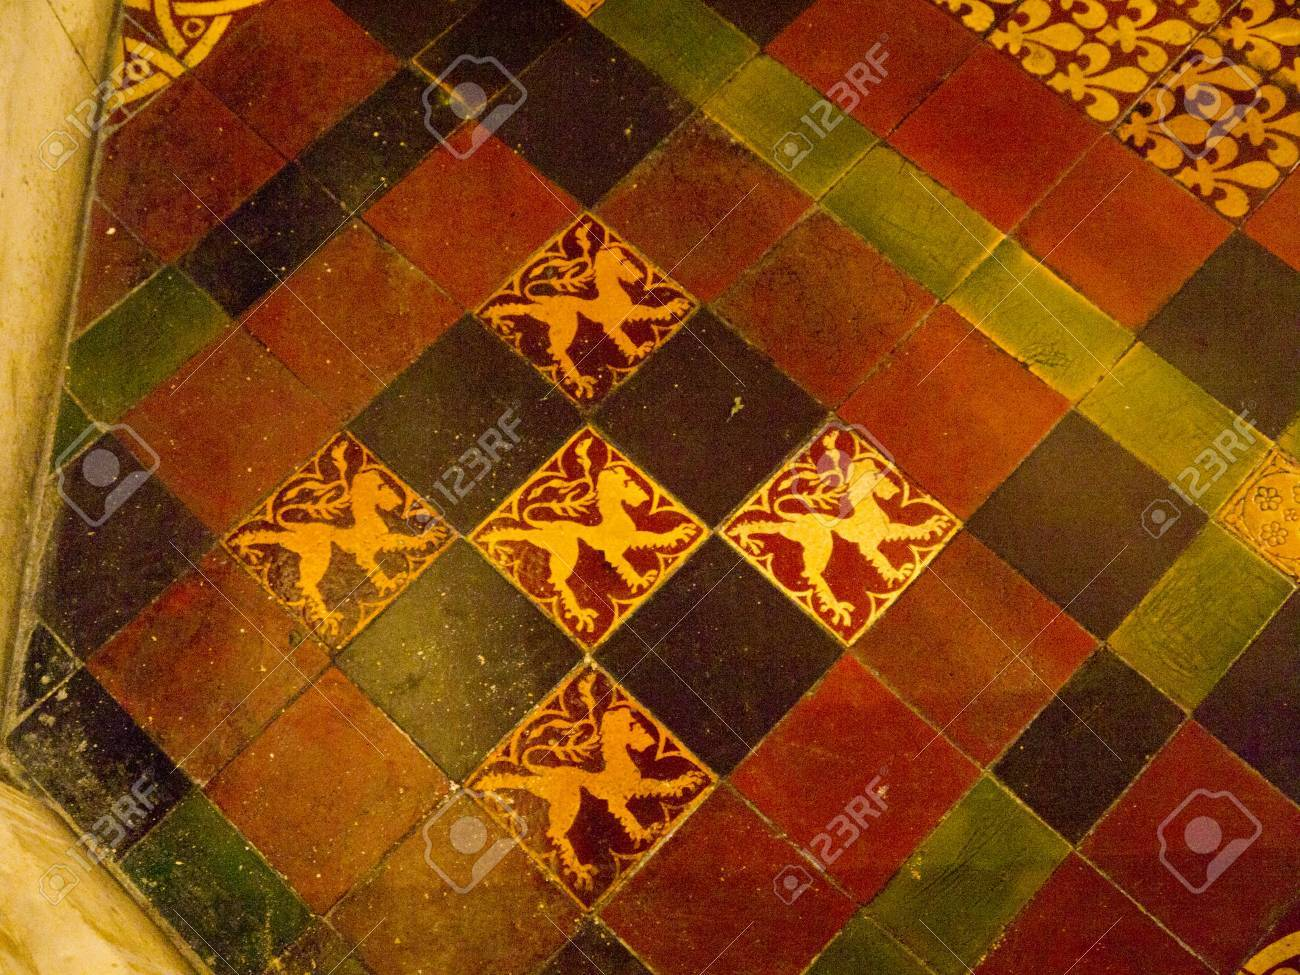 Medieval Floor Tiles In Christ Church Cathedral In Dublin Ireland ...